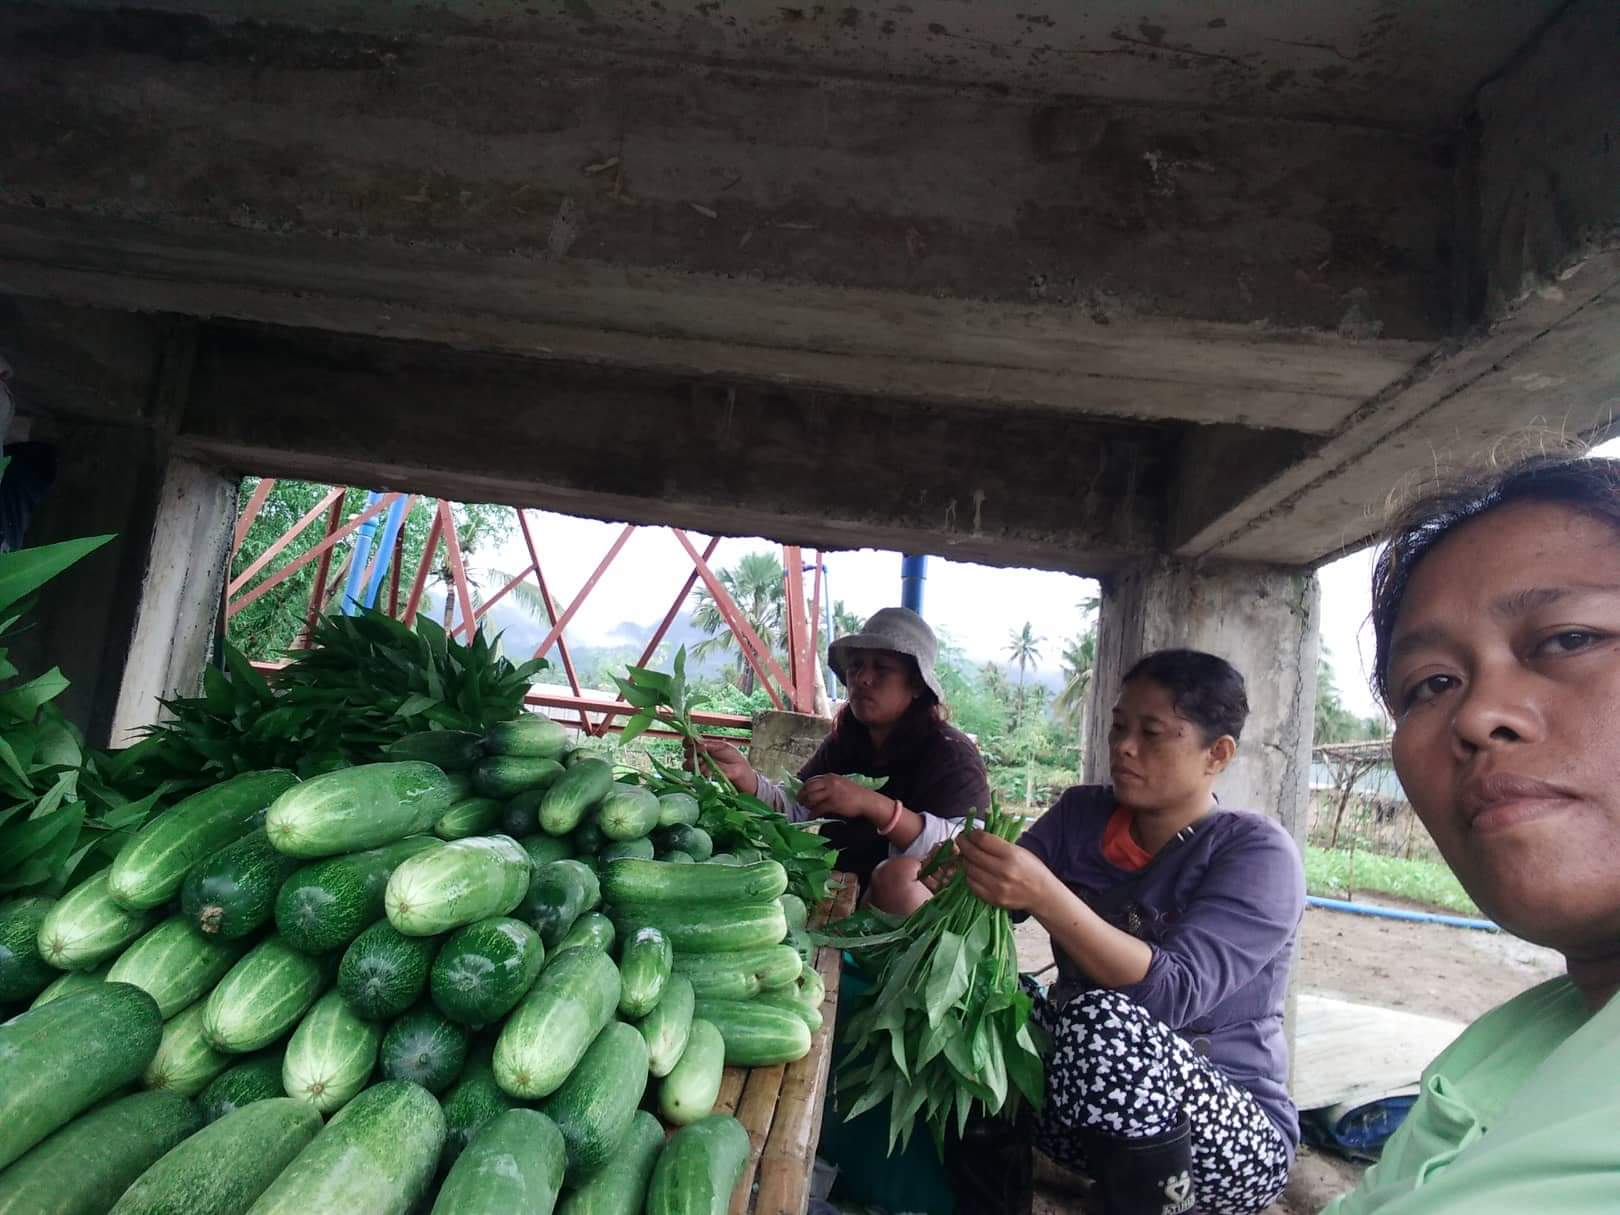 Harvest going on daily in cleaning/storage, cooling building